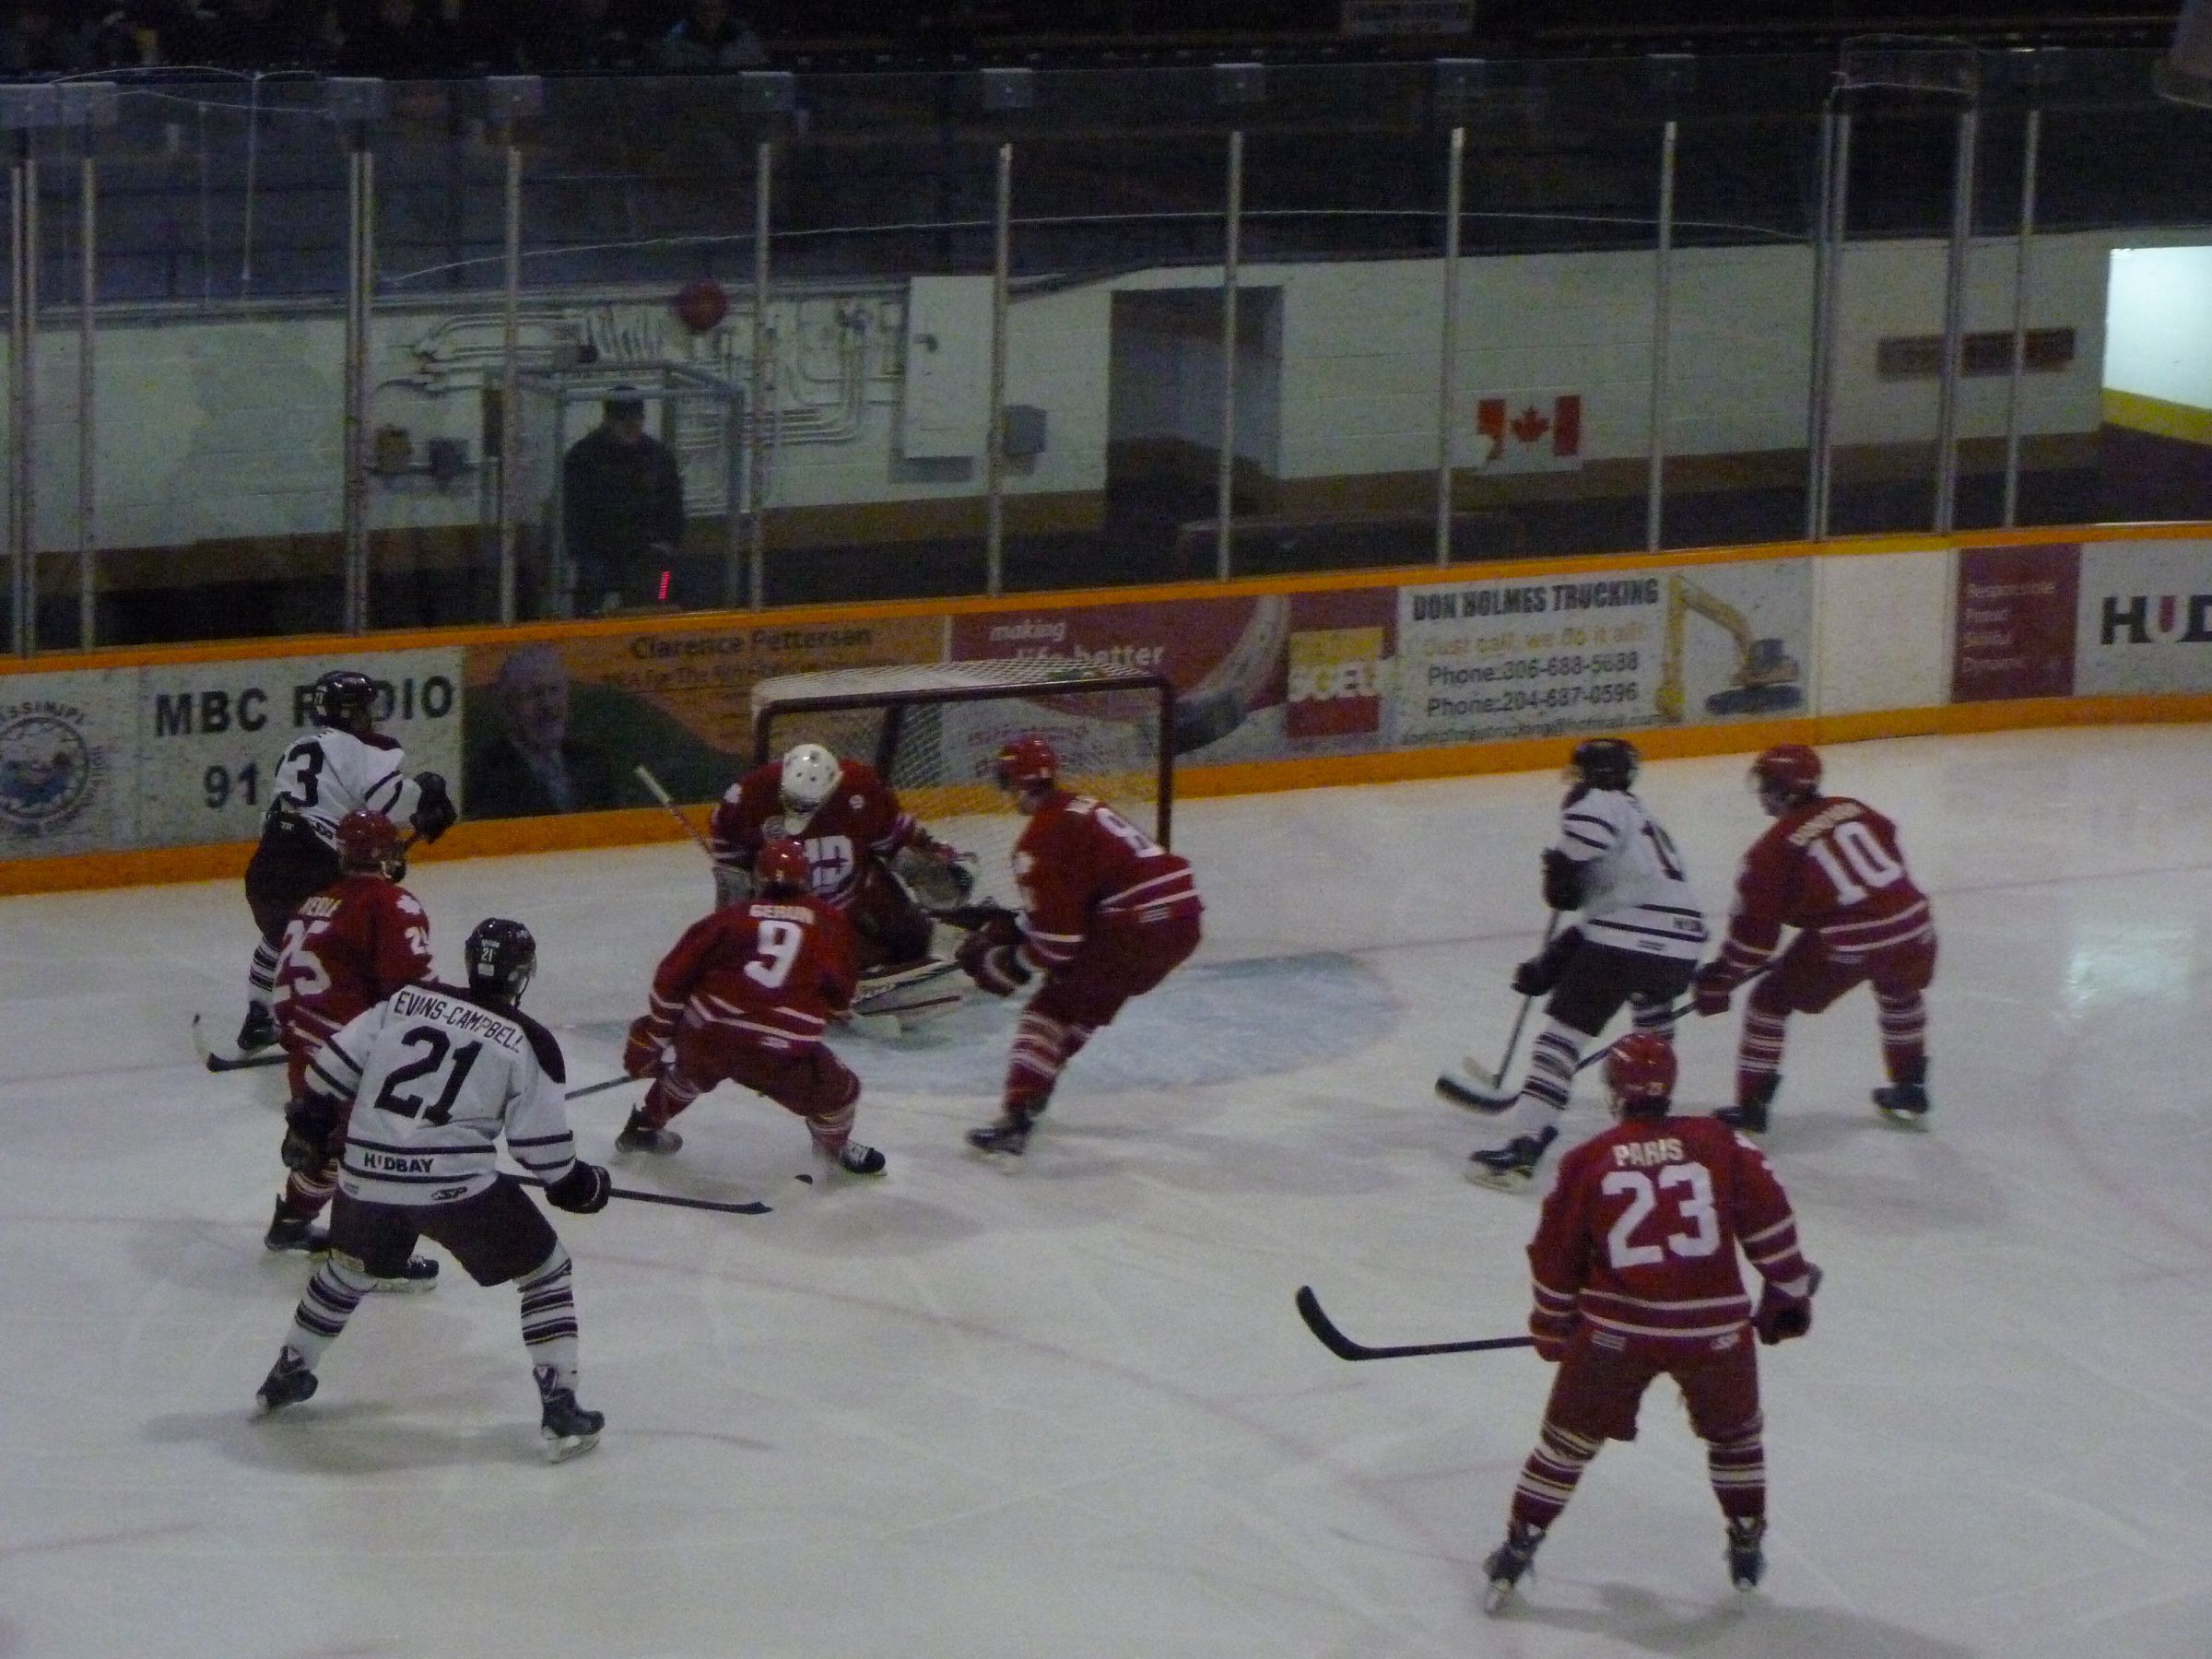 Bombers Take Down Hounds Flin Flon Online Brought To